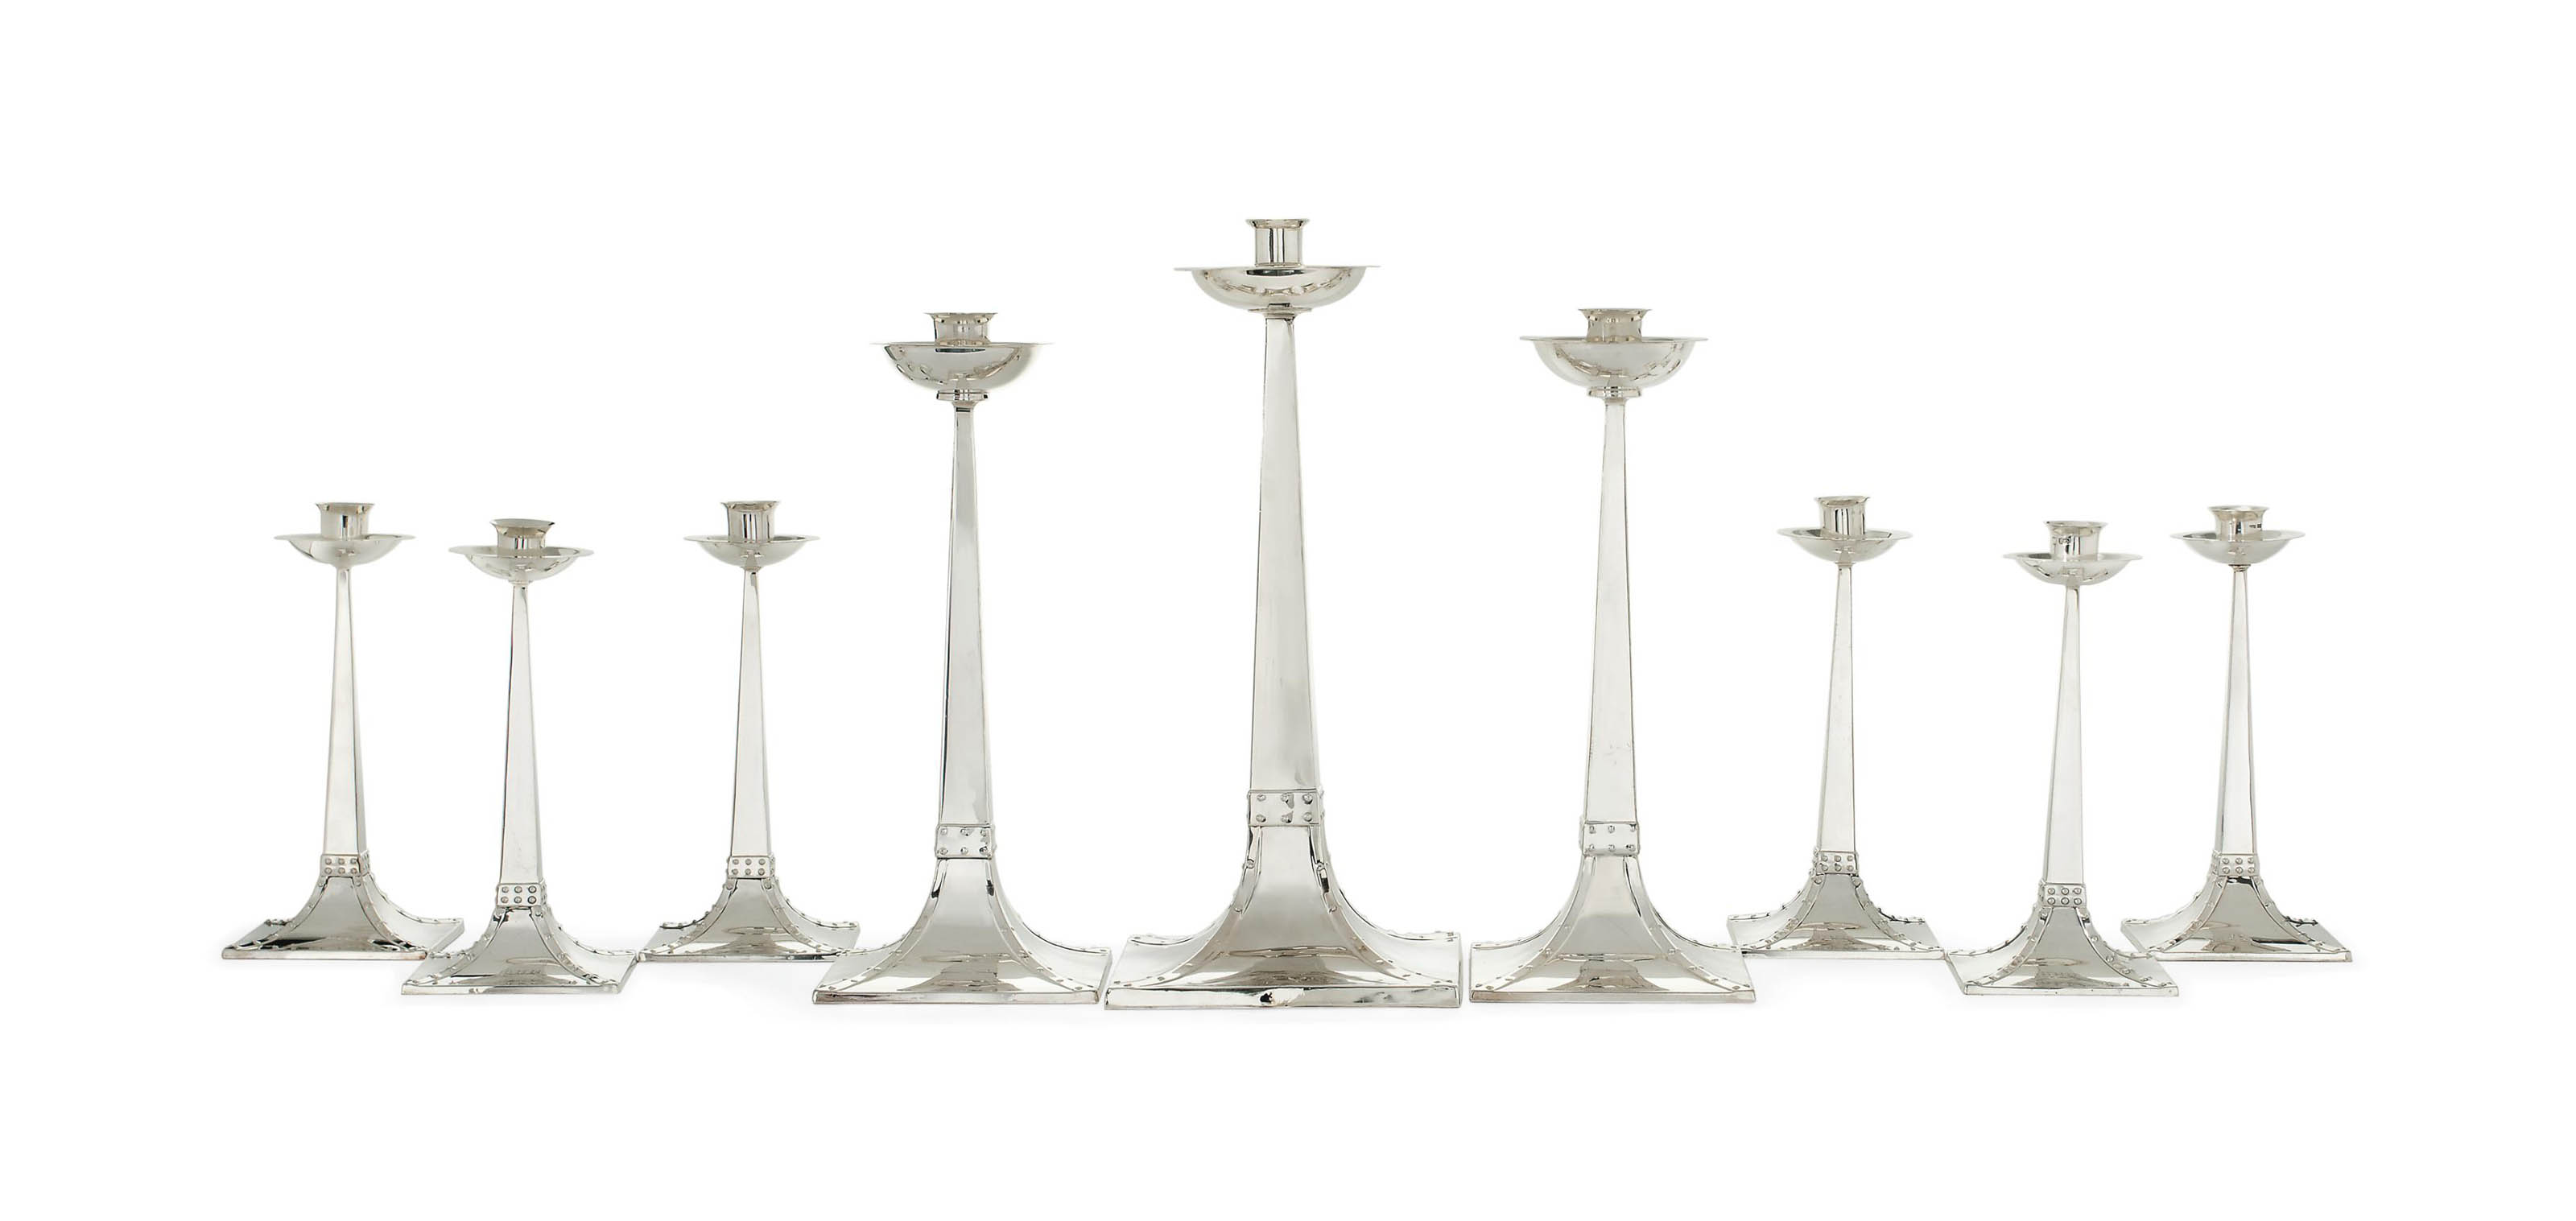 A GRADUATED AND MATCHED SET OF NINE ARTS & CRAFTS SILVER CANDLESTICKS BY JAMES DIXON & SON AND EDWARDS & CO